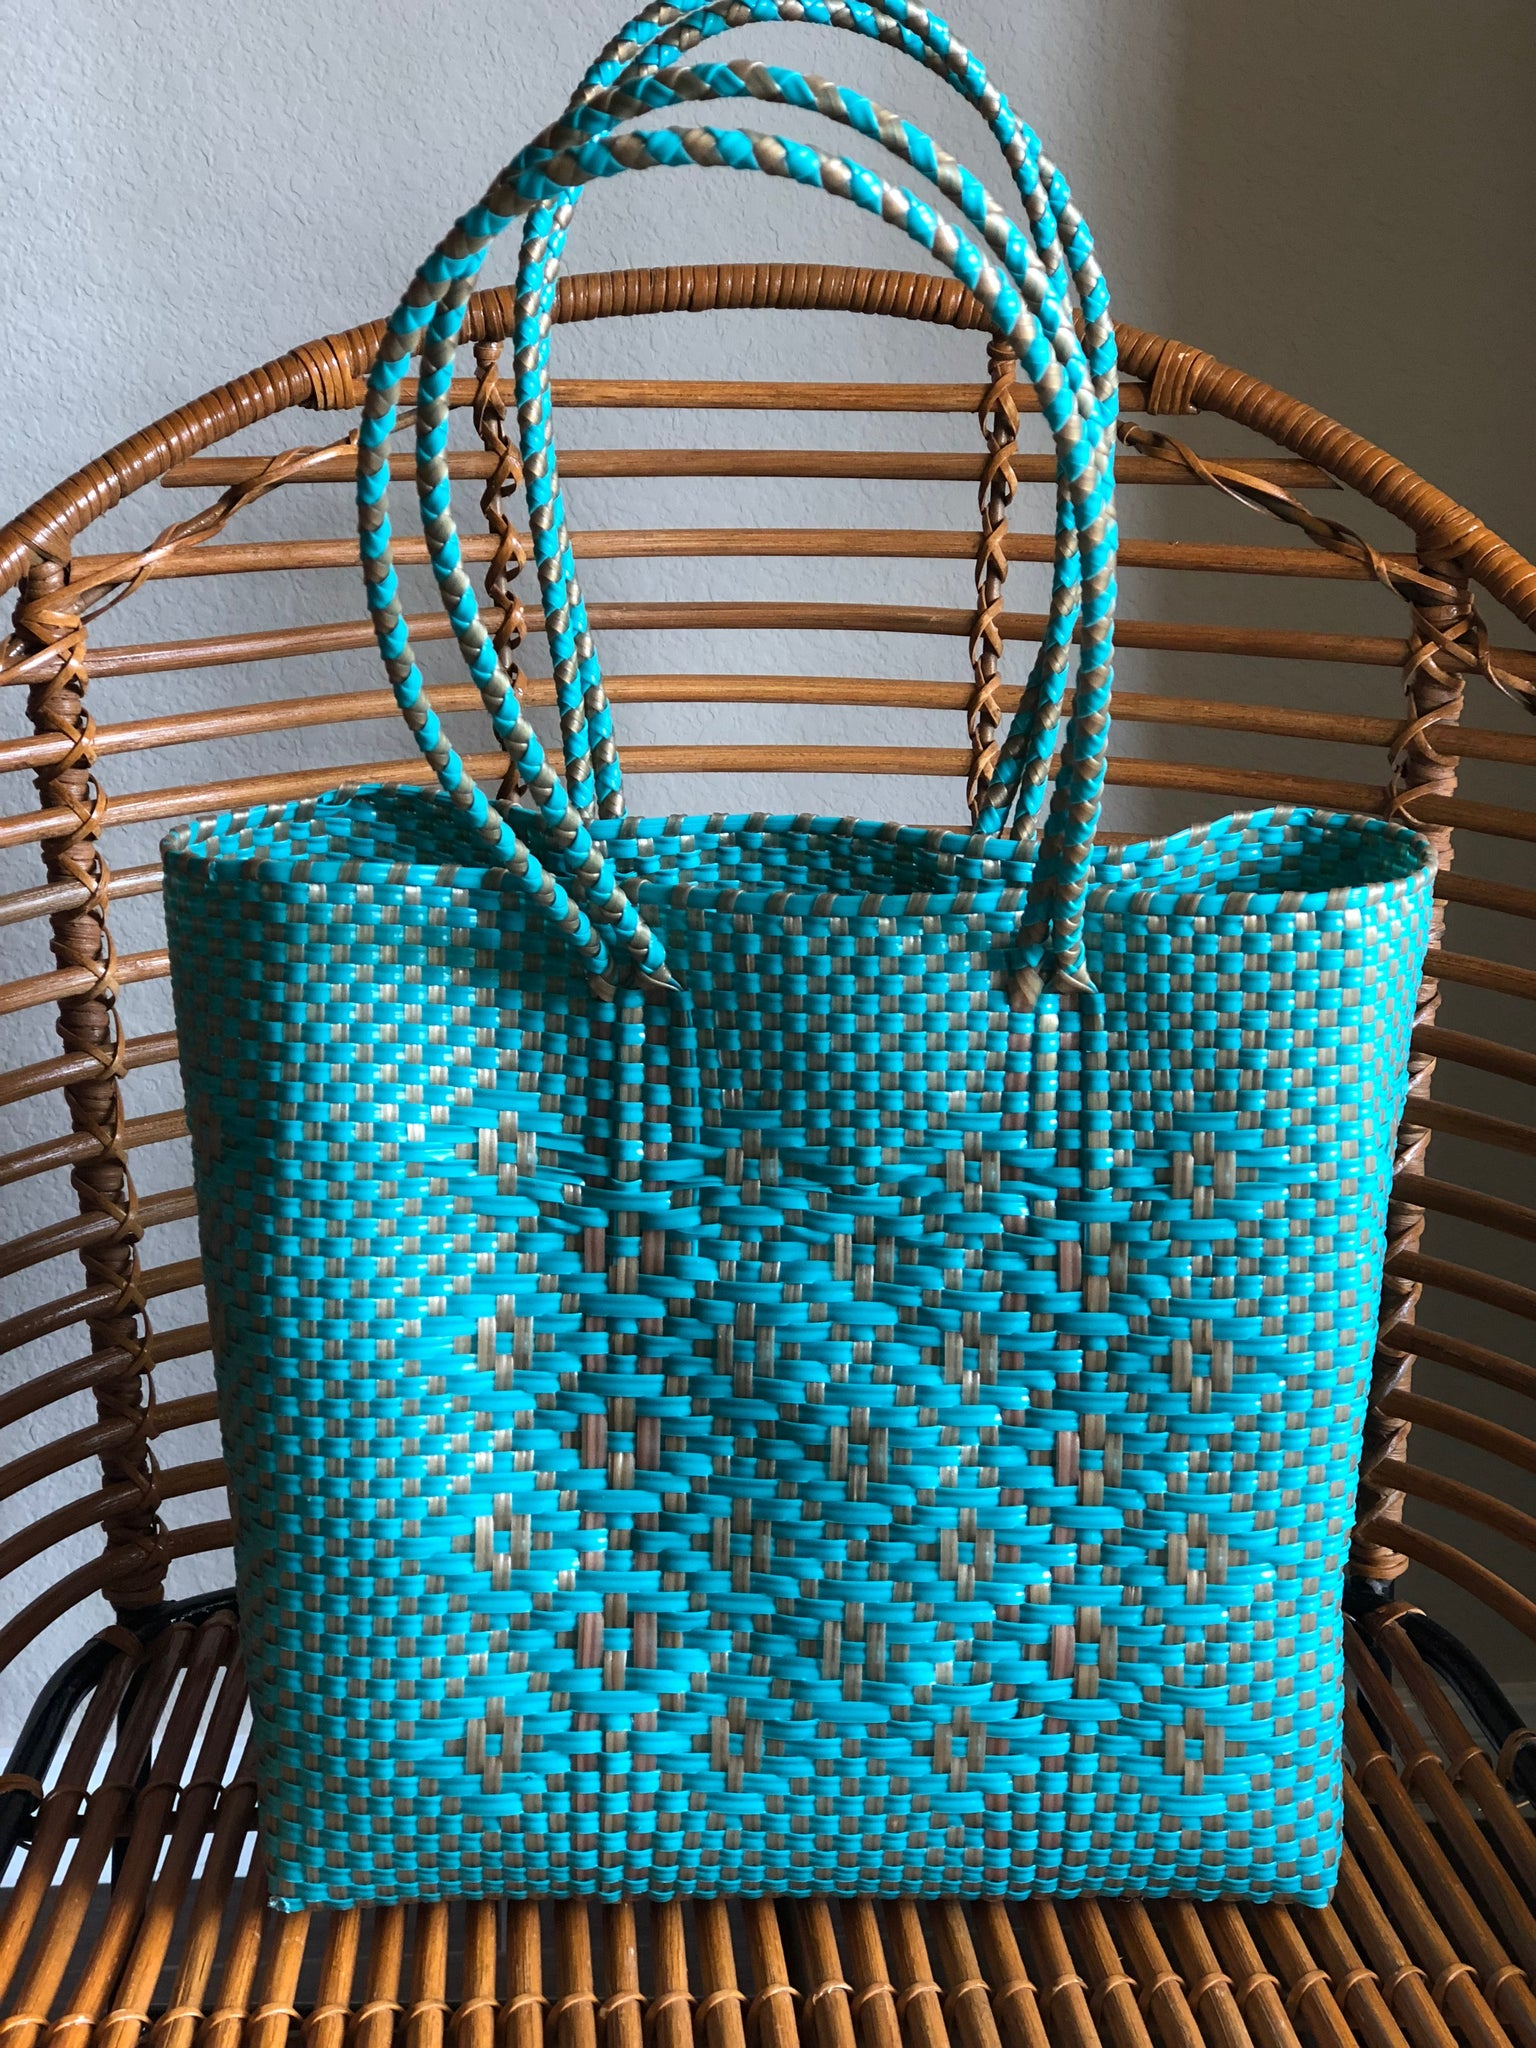 Medium Turquoise and Gold Woven Tote